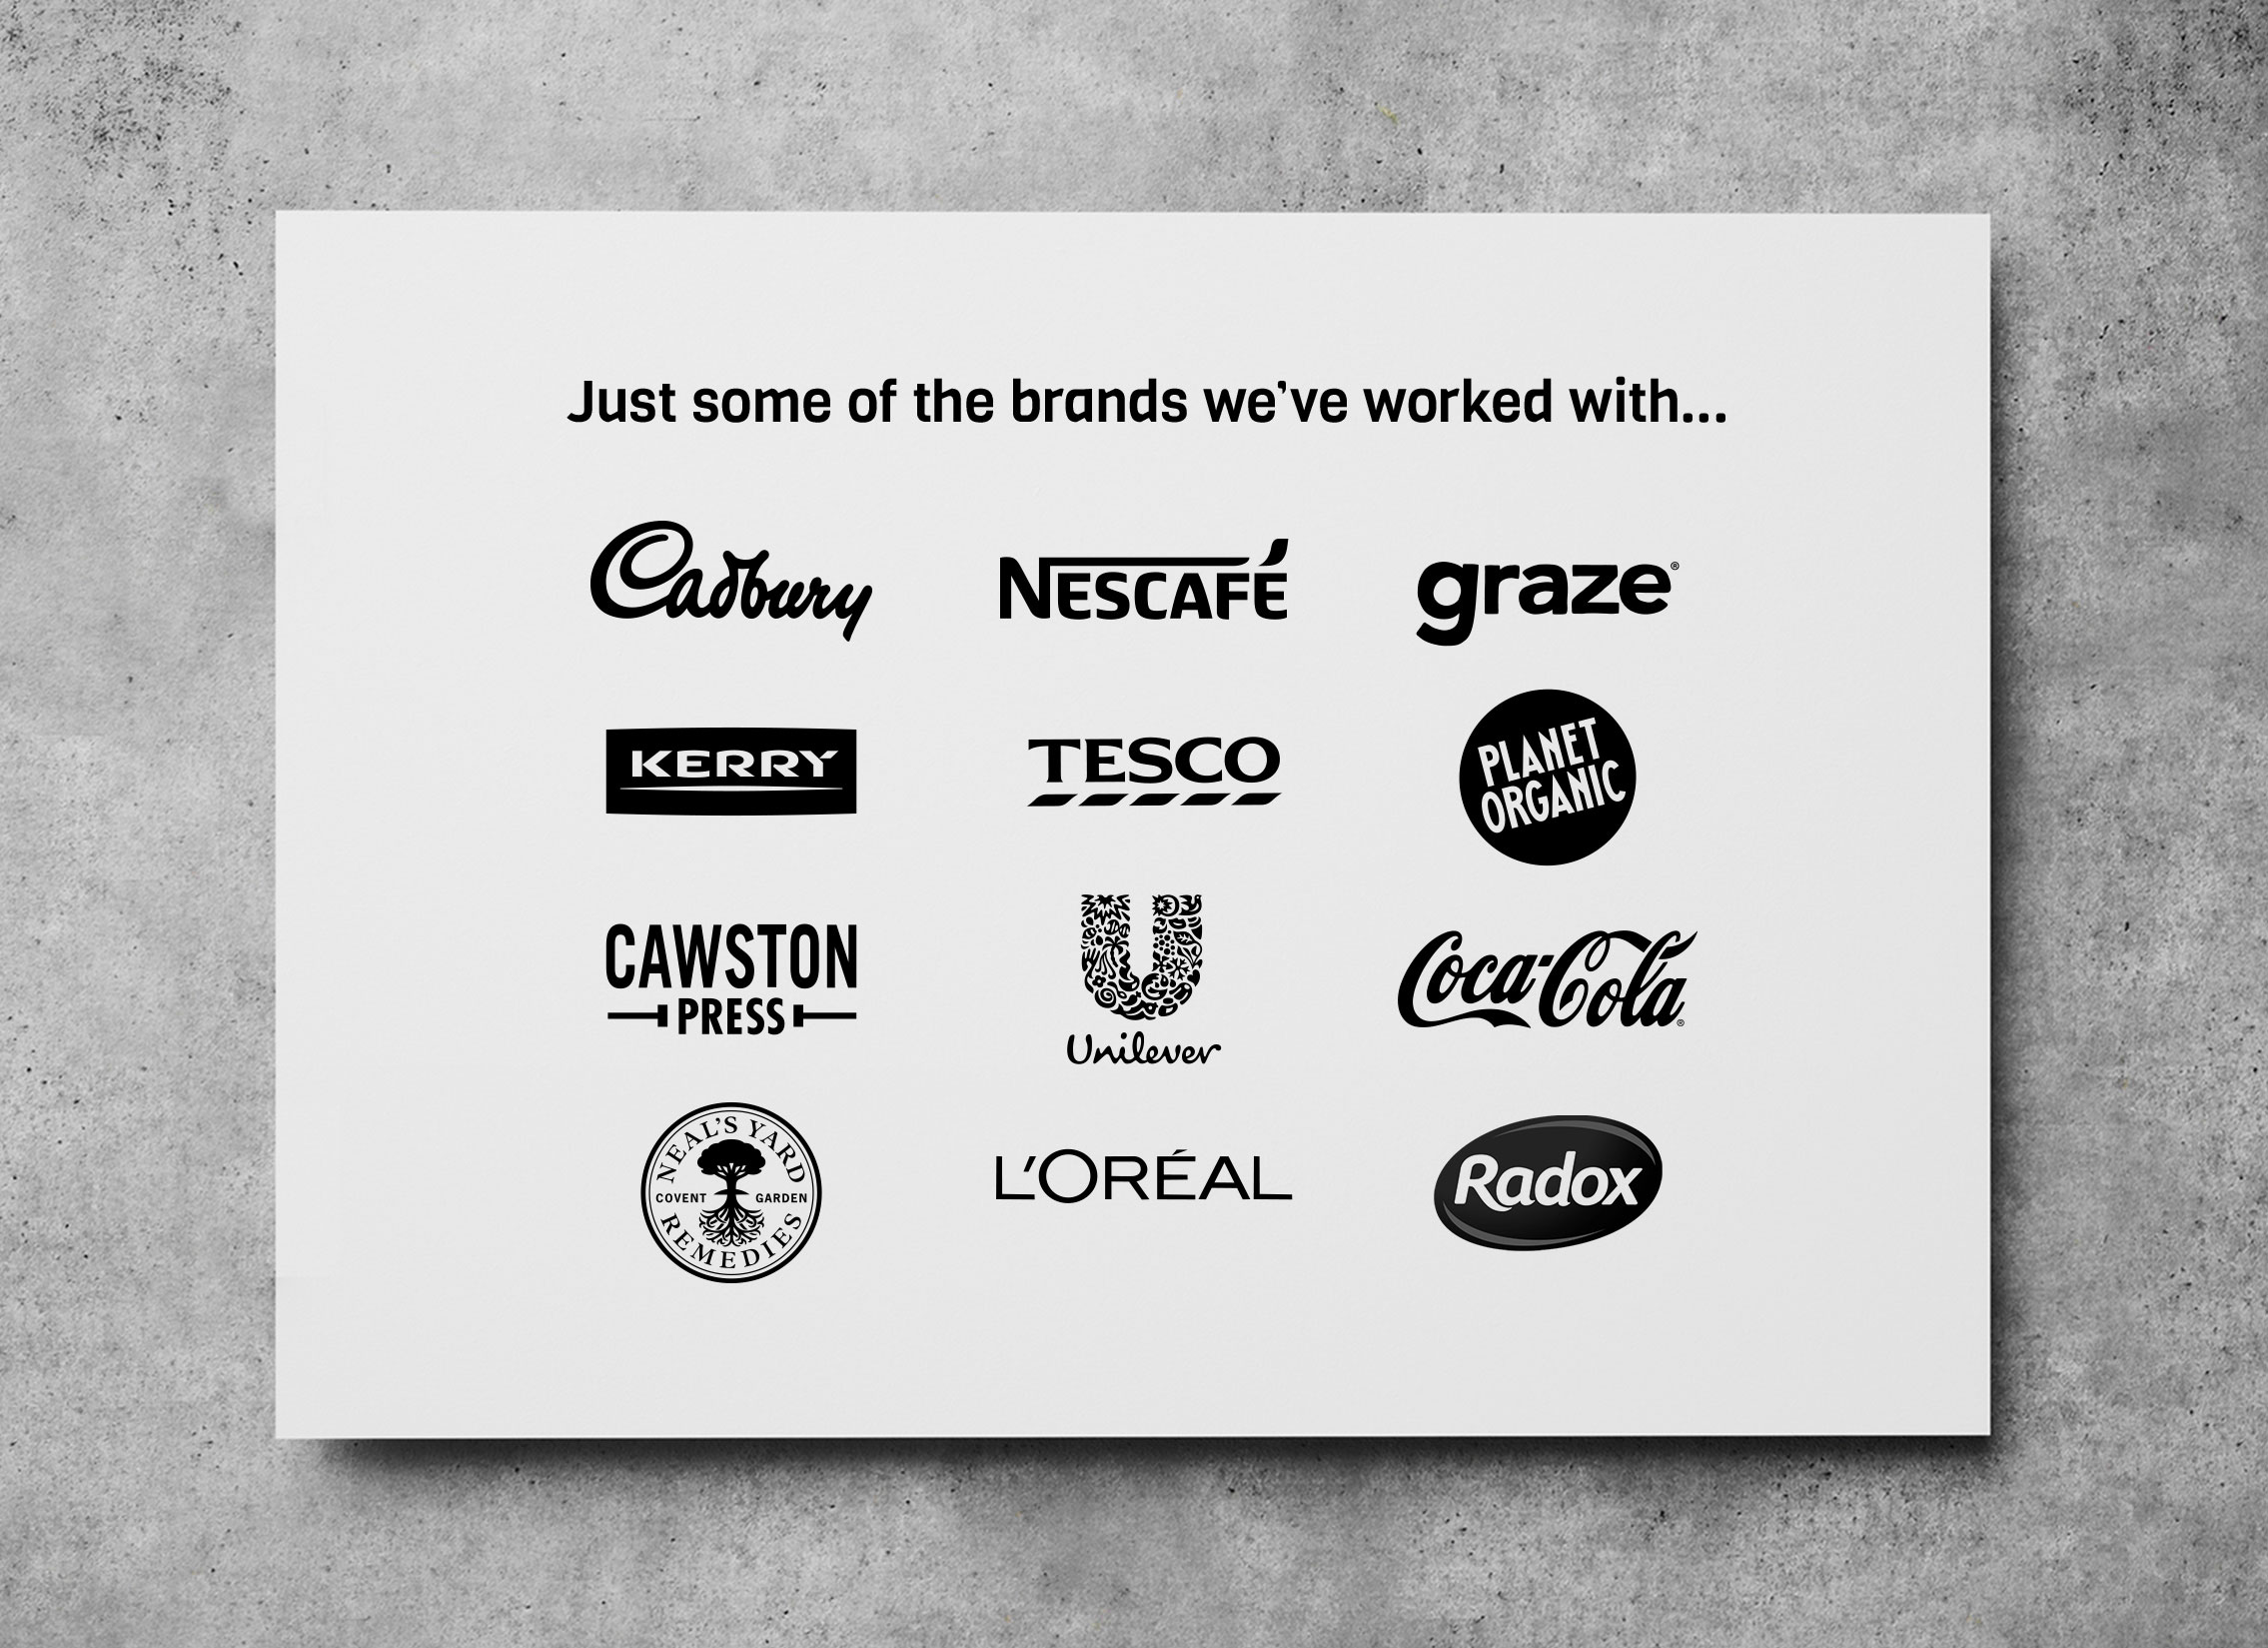 Just some of the brands we've worked with...